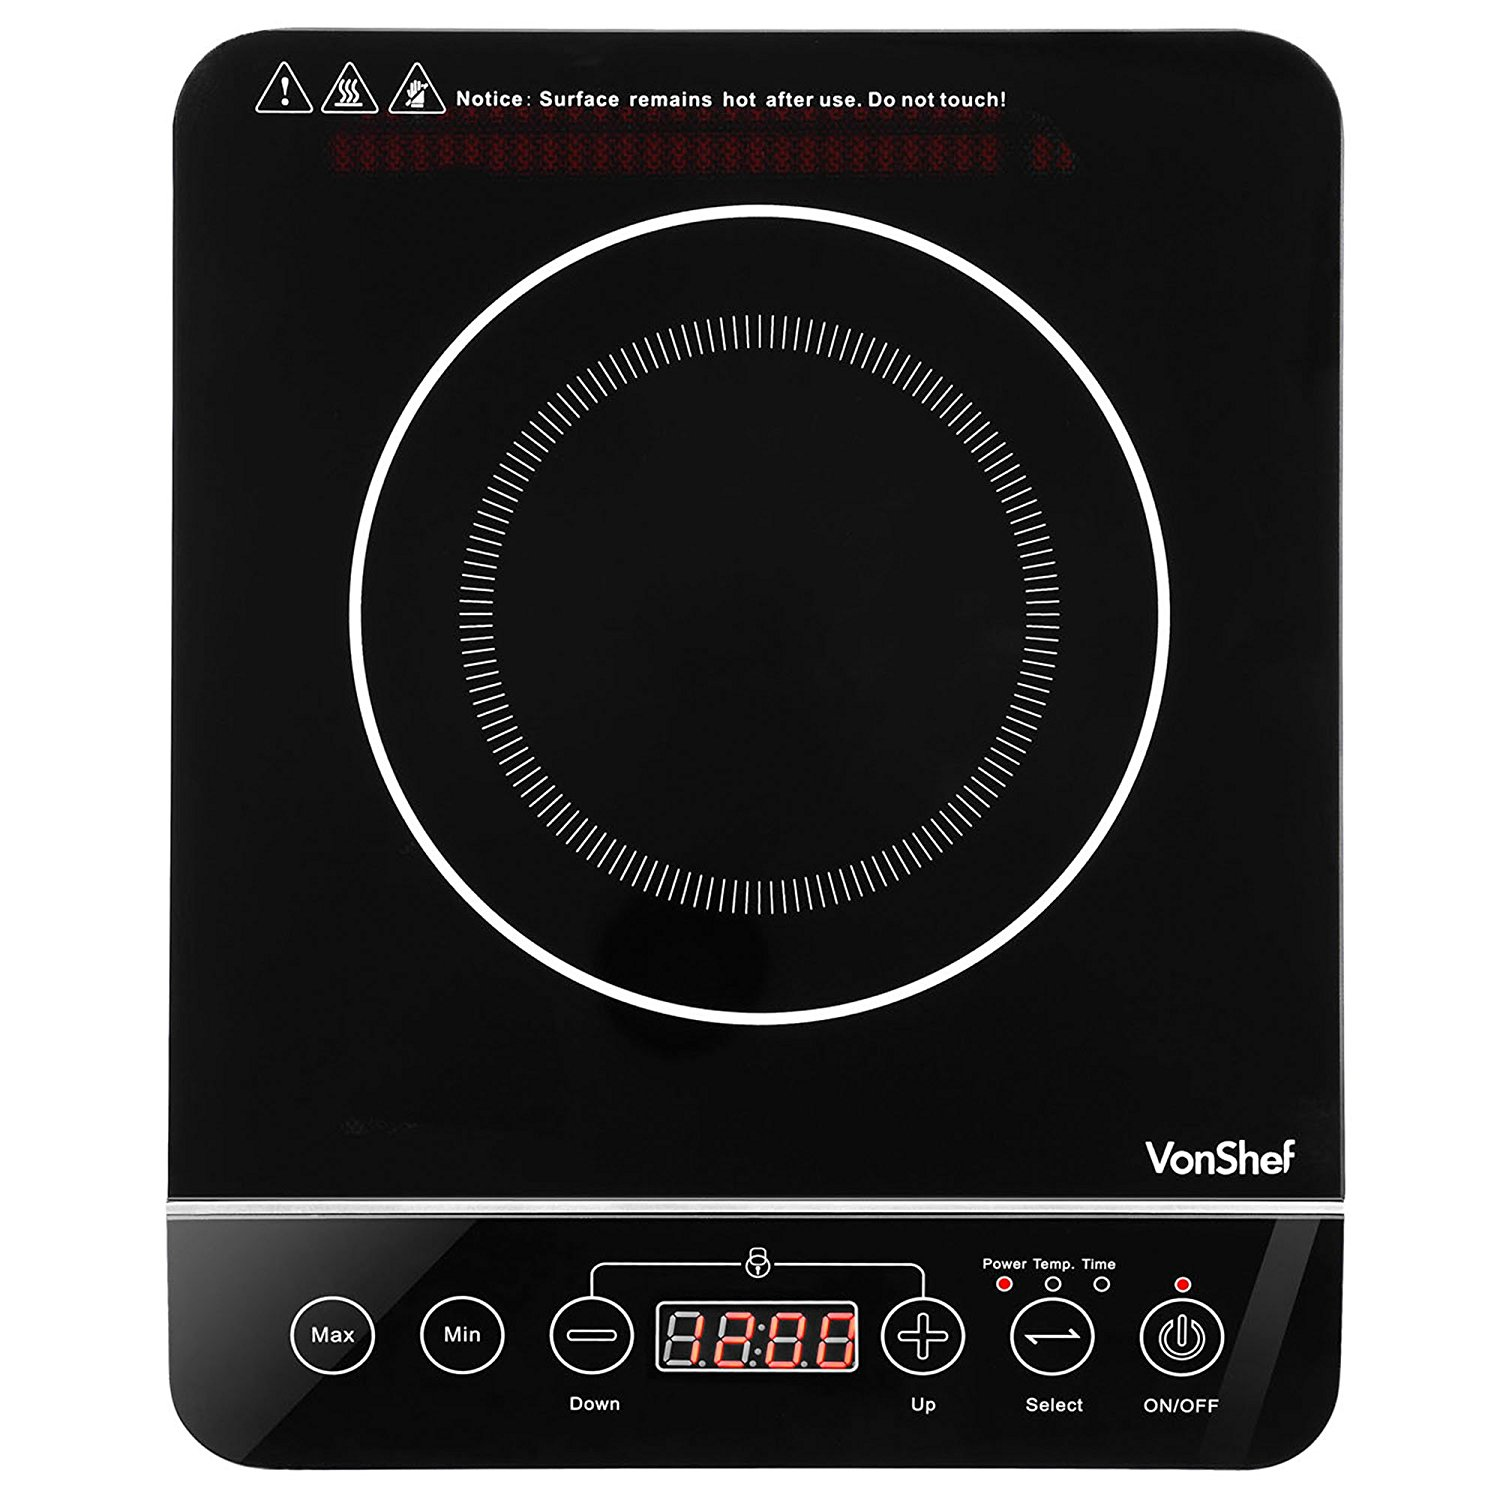 Vonshef Portable Digital Electric Induction Countertop